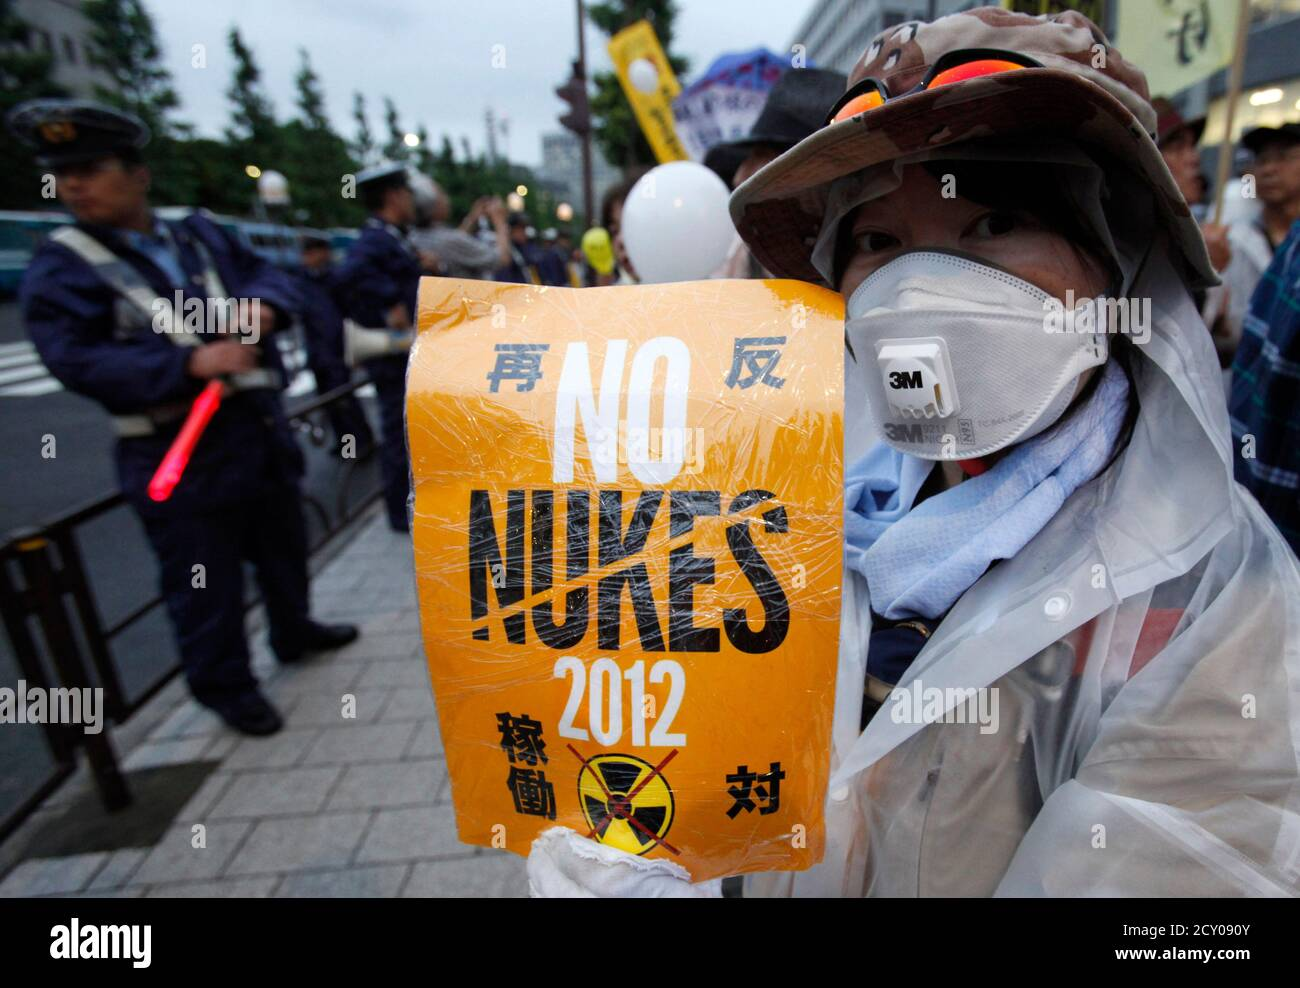 A woman wearing a mask takes part in an anti-nuclear demonstration outside prime minister's official residence in Tokyo July 20, 2012. Japan's debate over nuclear power has become increasingly heated after incumbent Prime Minister Yoshihiko Noda's decision to restart idled reactors despite persistent public safety concerns following last year's Fukushima nuclear crisis. REUTERS/Yuriko Nakao (JAPAN - Tags: POLITICS CIVIL UNREST ENERGY) Stock Photo